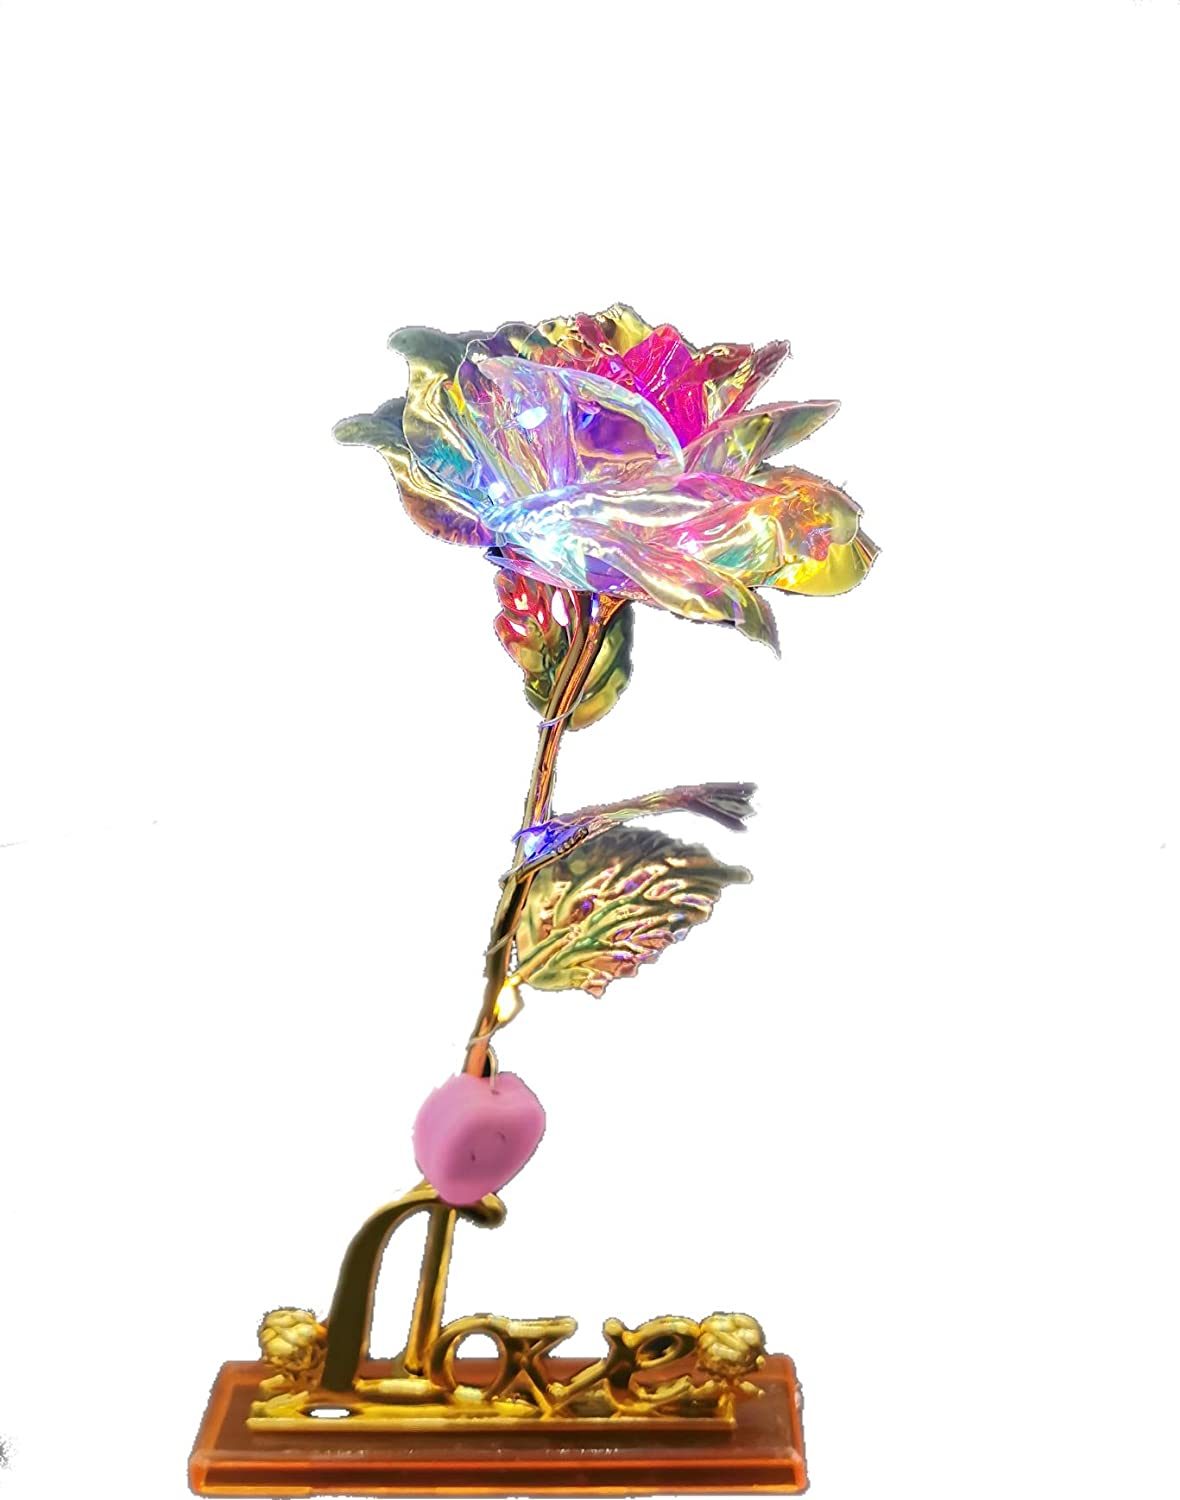 Best Gifts for Her for Girlfriend Wife Women LY EMMET Colorful Rose Artificial Gold Roses Flower Unique GiftsValentines Day Thanksgiving Mothers Day Girls Birthday